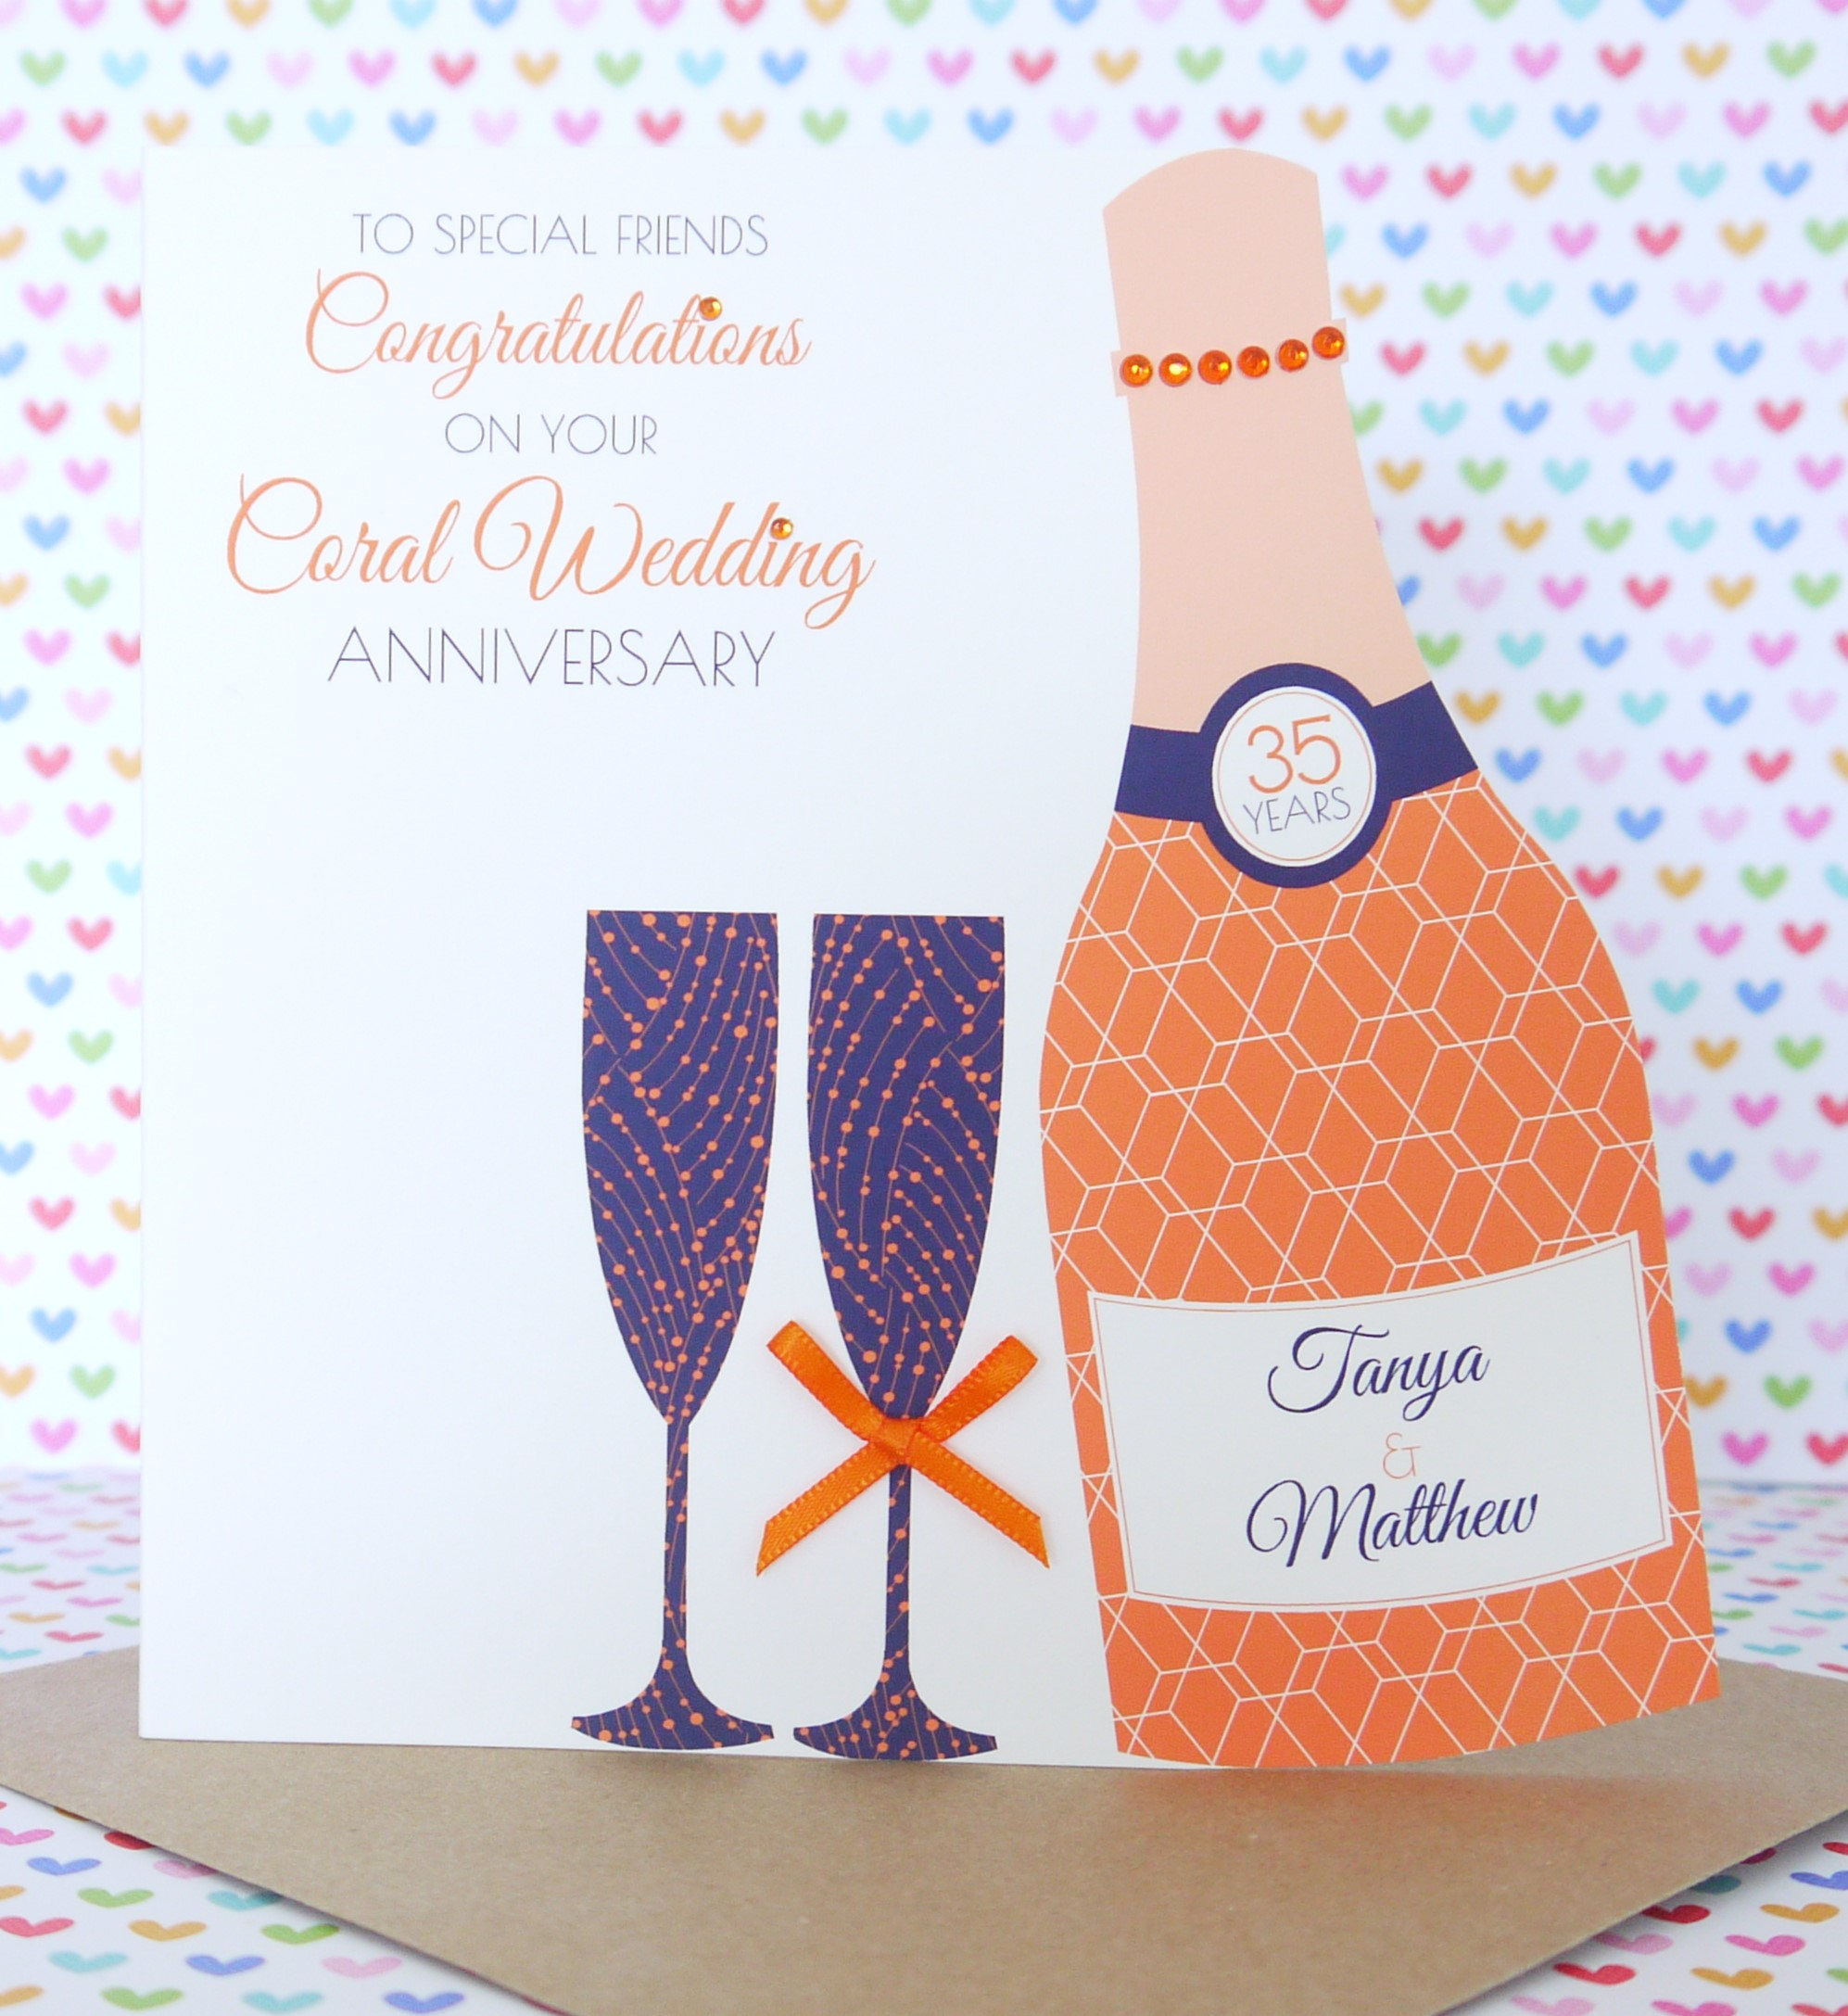 Personalised Handmade Coral/35th Wedding Anniversary Card